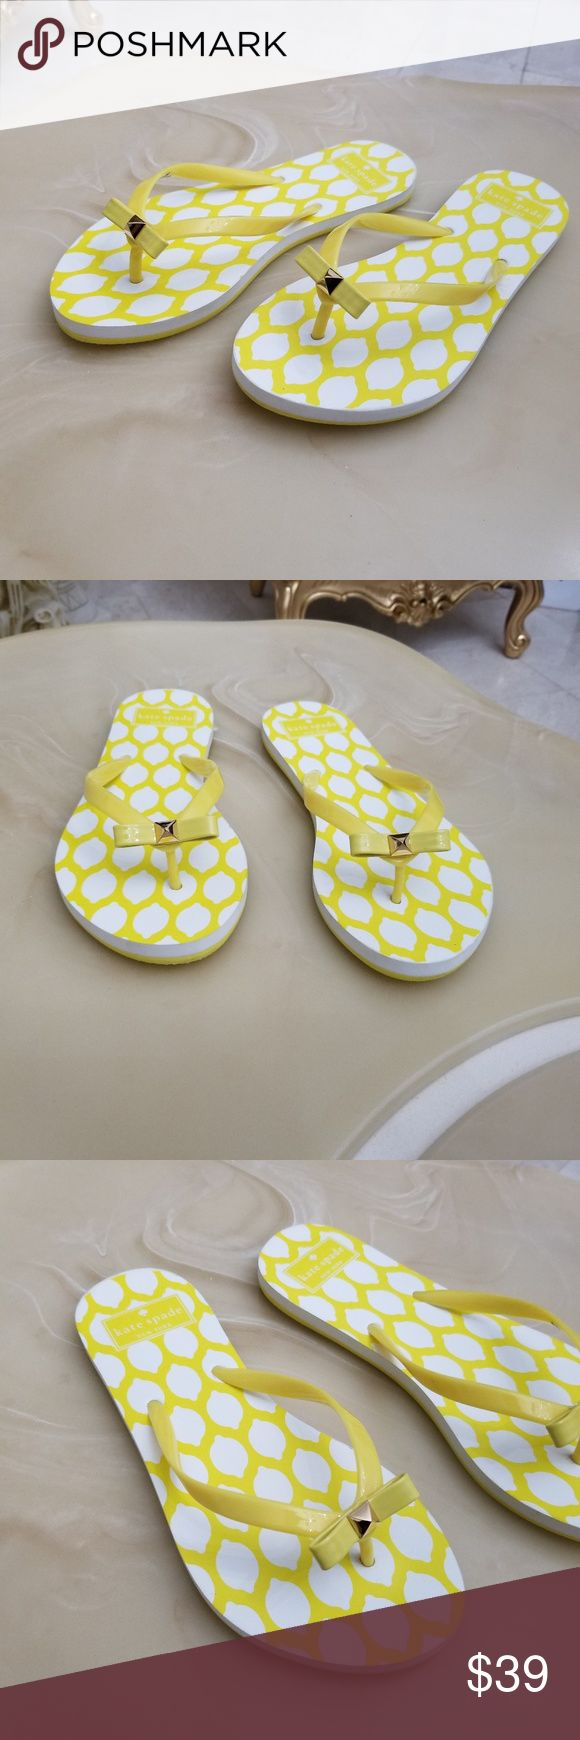 Kate Spade Eva Yellow Lemon Bow Flip Flops Kate Spade Eva Yellow Lemon Bow Flip Flops  Available in Women's Size: 6 ~ 7 ~ 8  ~ A Display model in Excellent Condition   ~No Box or Tags Attached ~   100% Authentic, Guaranteed!  Kate Spade Eva Yellow Lemon Bow Flip Flops kate spade Shoes Sandals